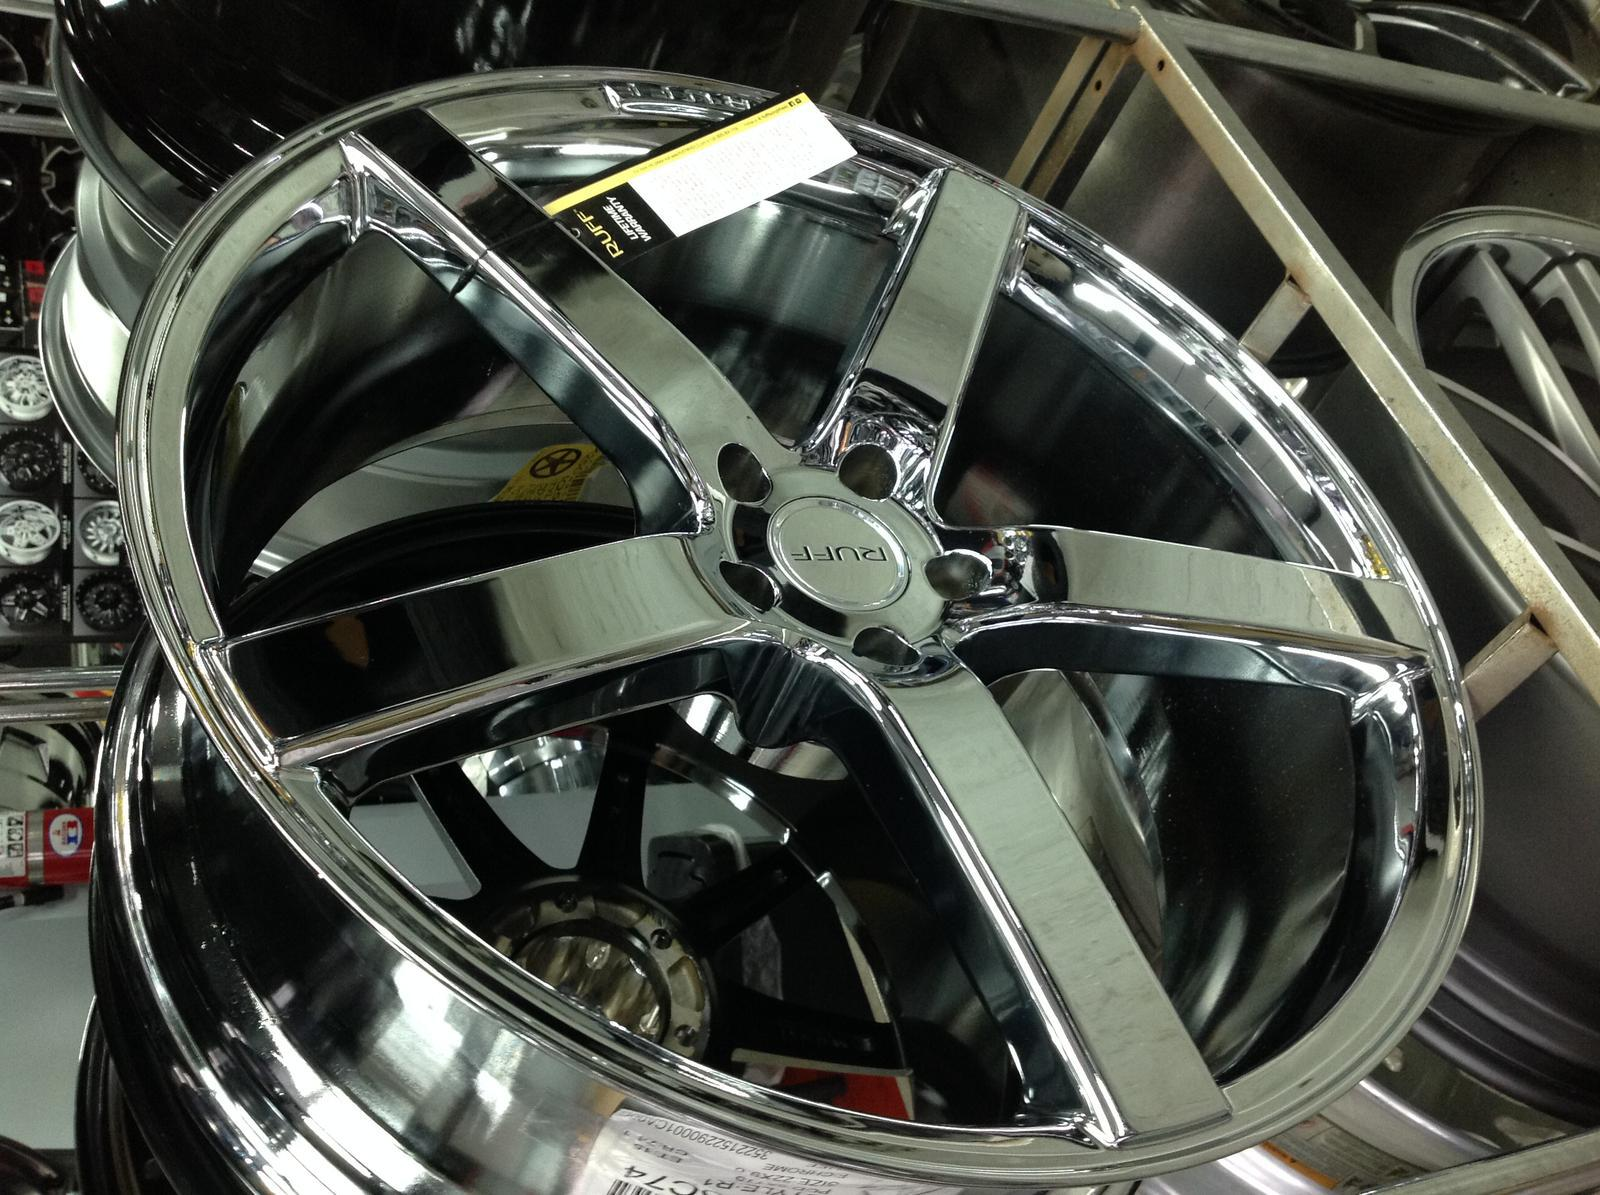 Hyundai West Palm Beach >> Ruff Custom Wheel Connection West Palm Beach, FL (561) 697-1888